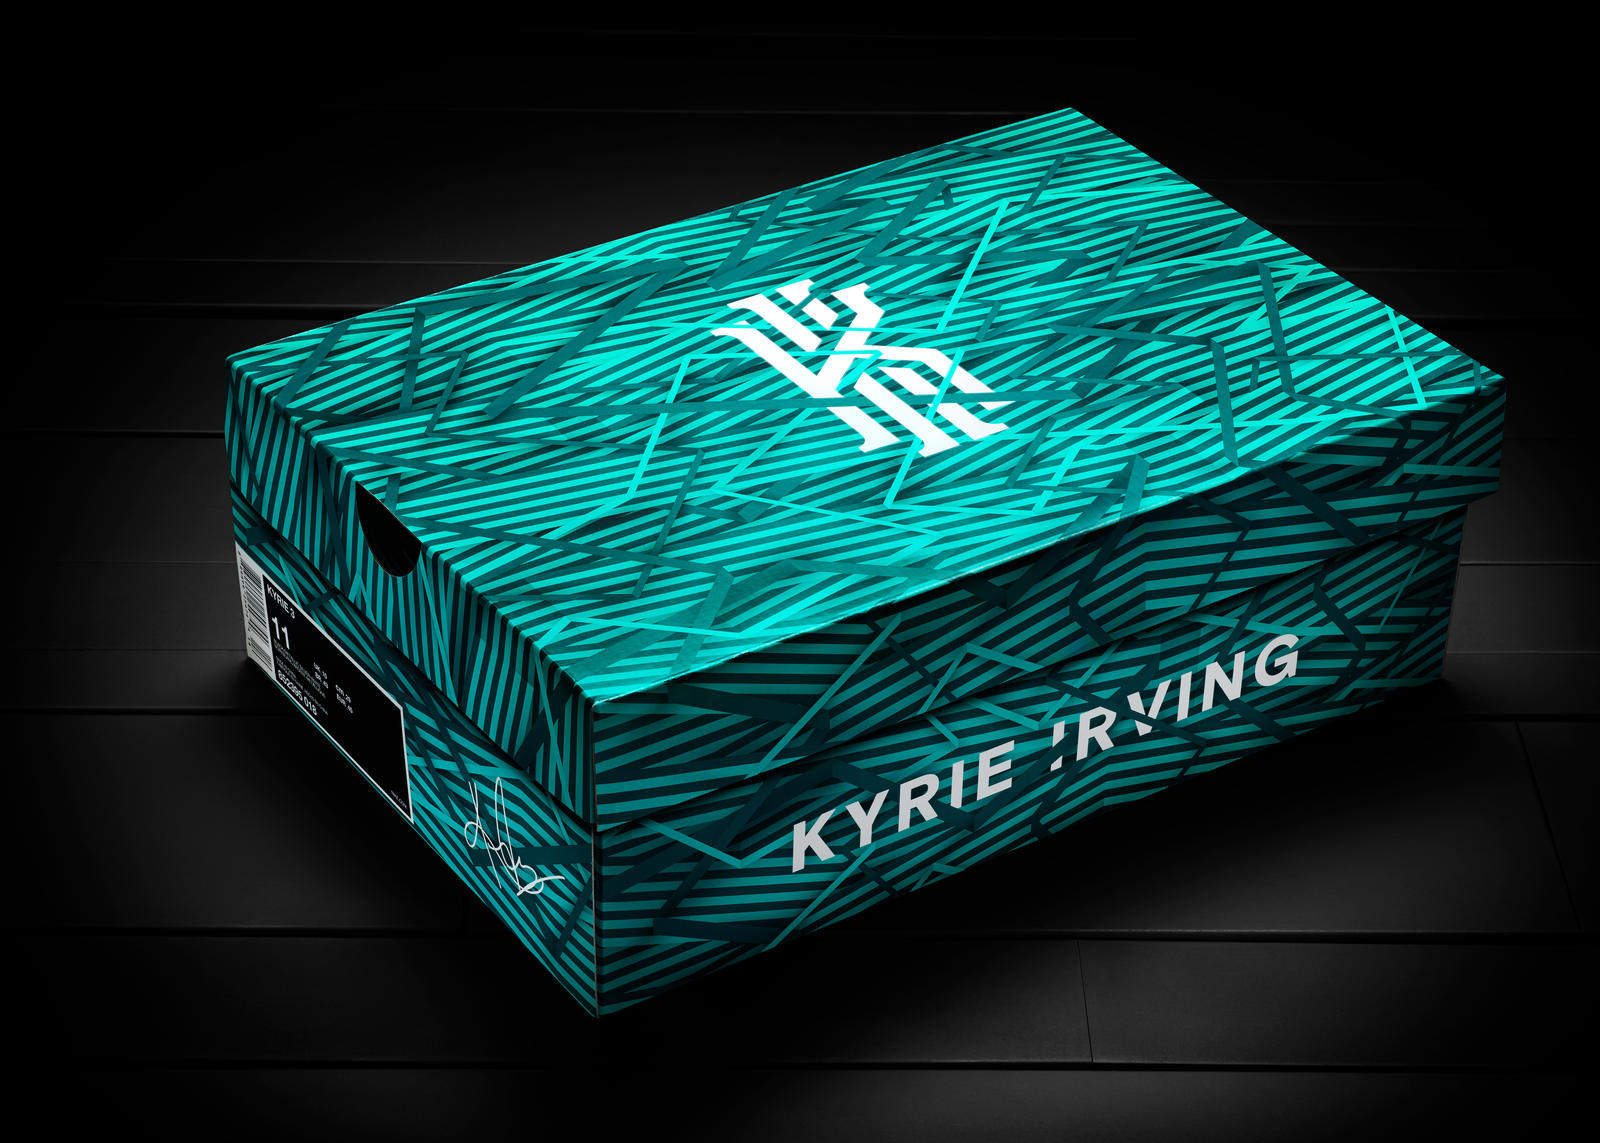 outlet store 23310 4a7b8 16-400 Nike Kyrie 3 Box-01. Official KYRIE 3 box